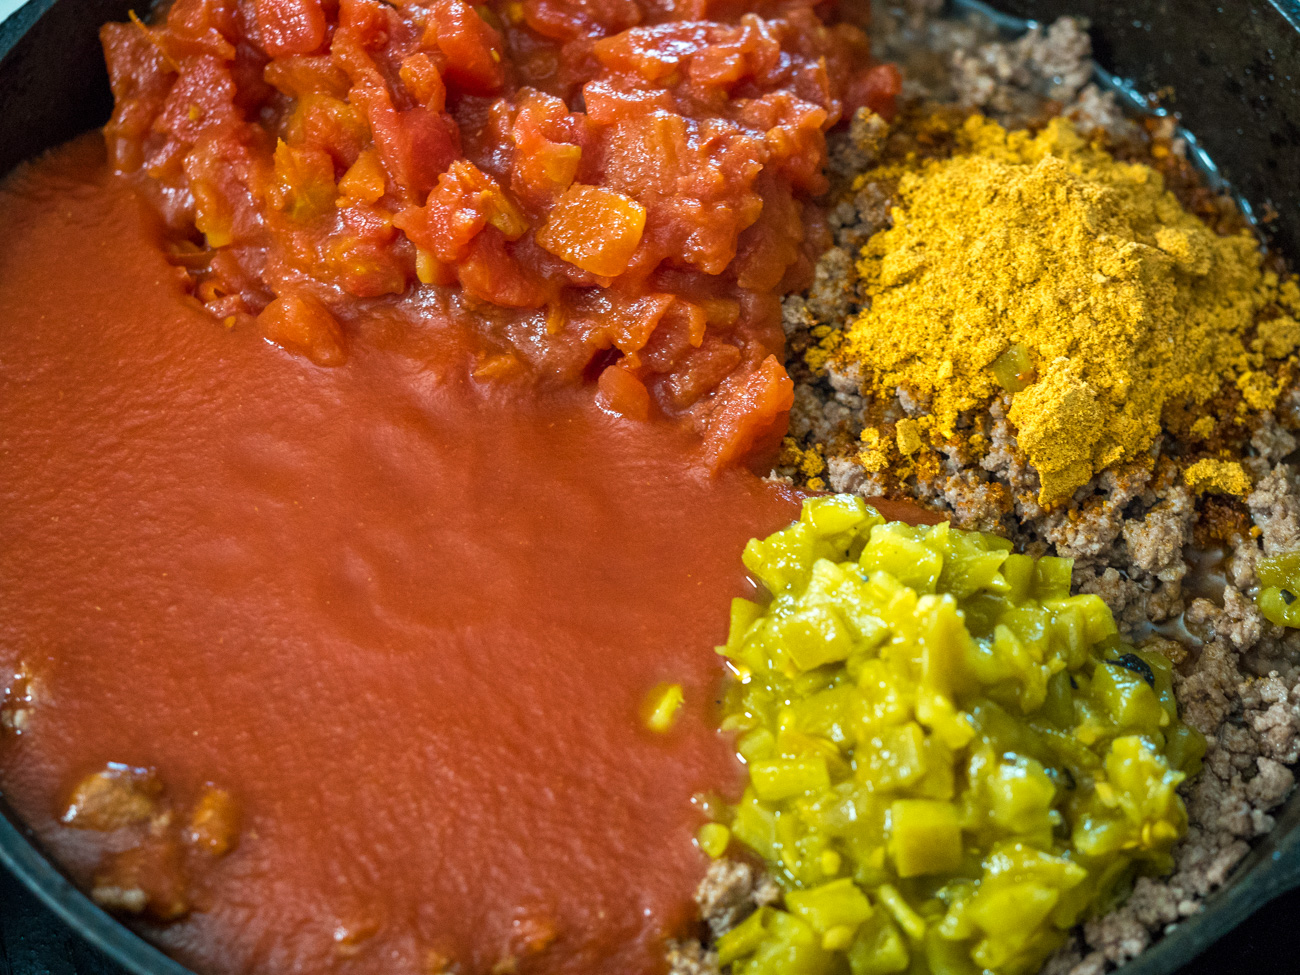 Return meat to skillet and taco seasoning, seasoned salt, diced tomatoes, tomato sauce, and chopped green chilies. Reduce heat and simmer, uncovered for 15-20 minutes.